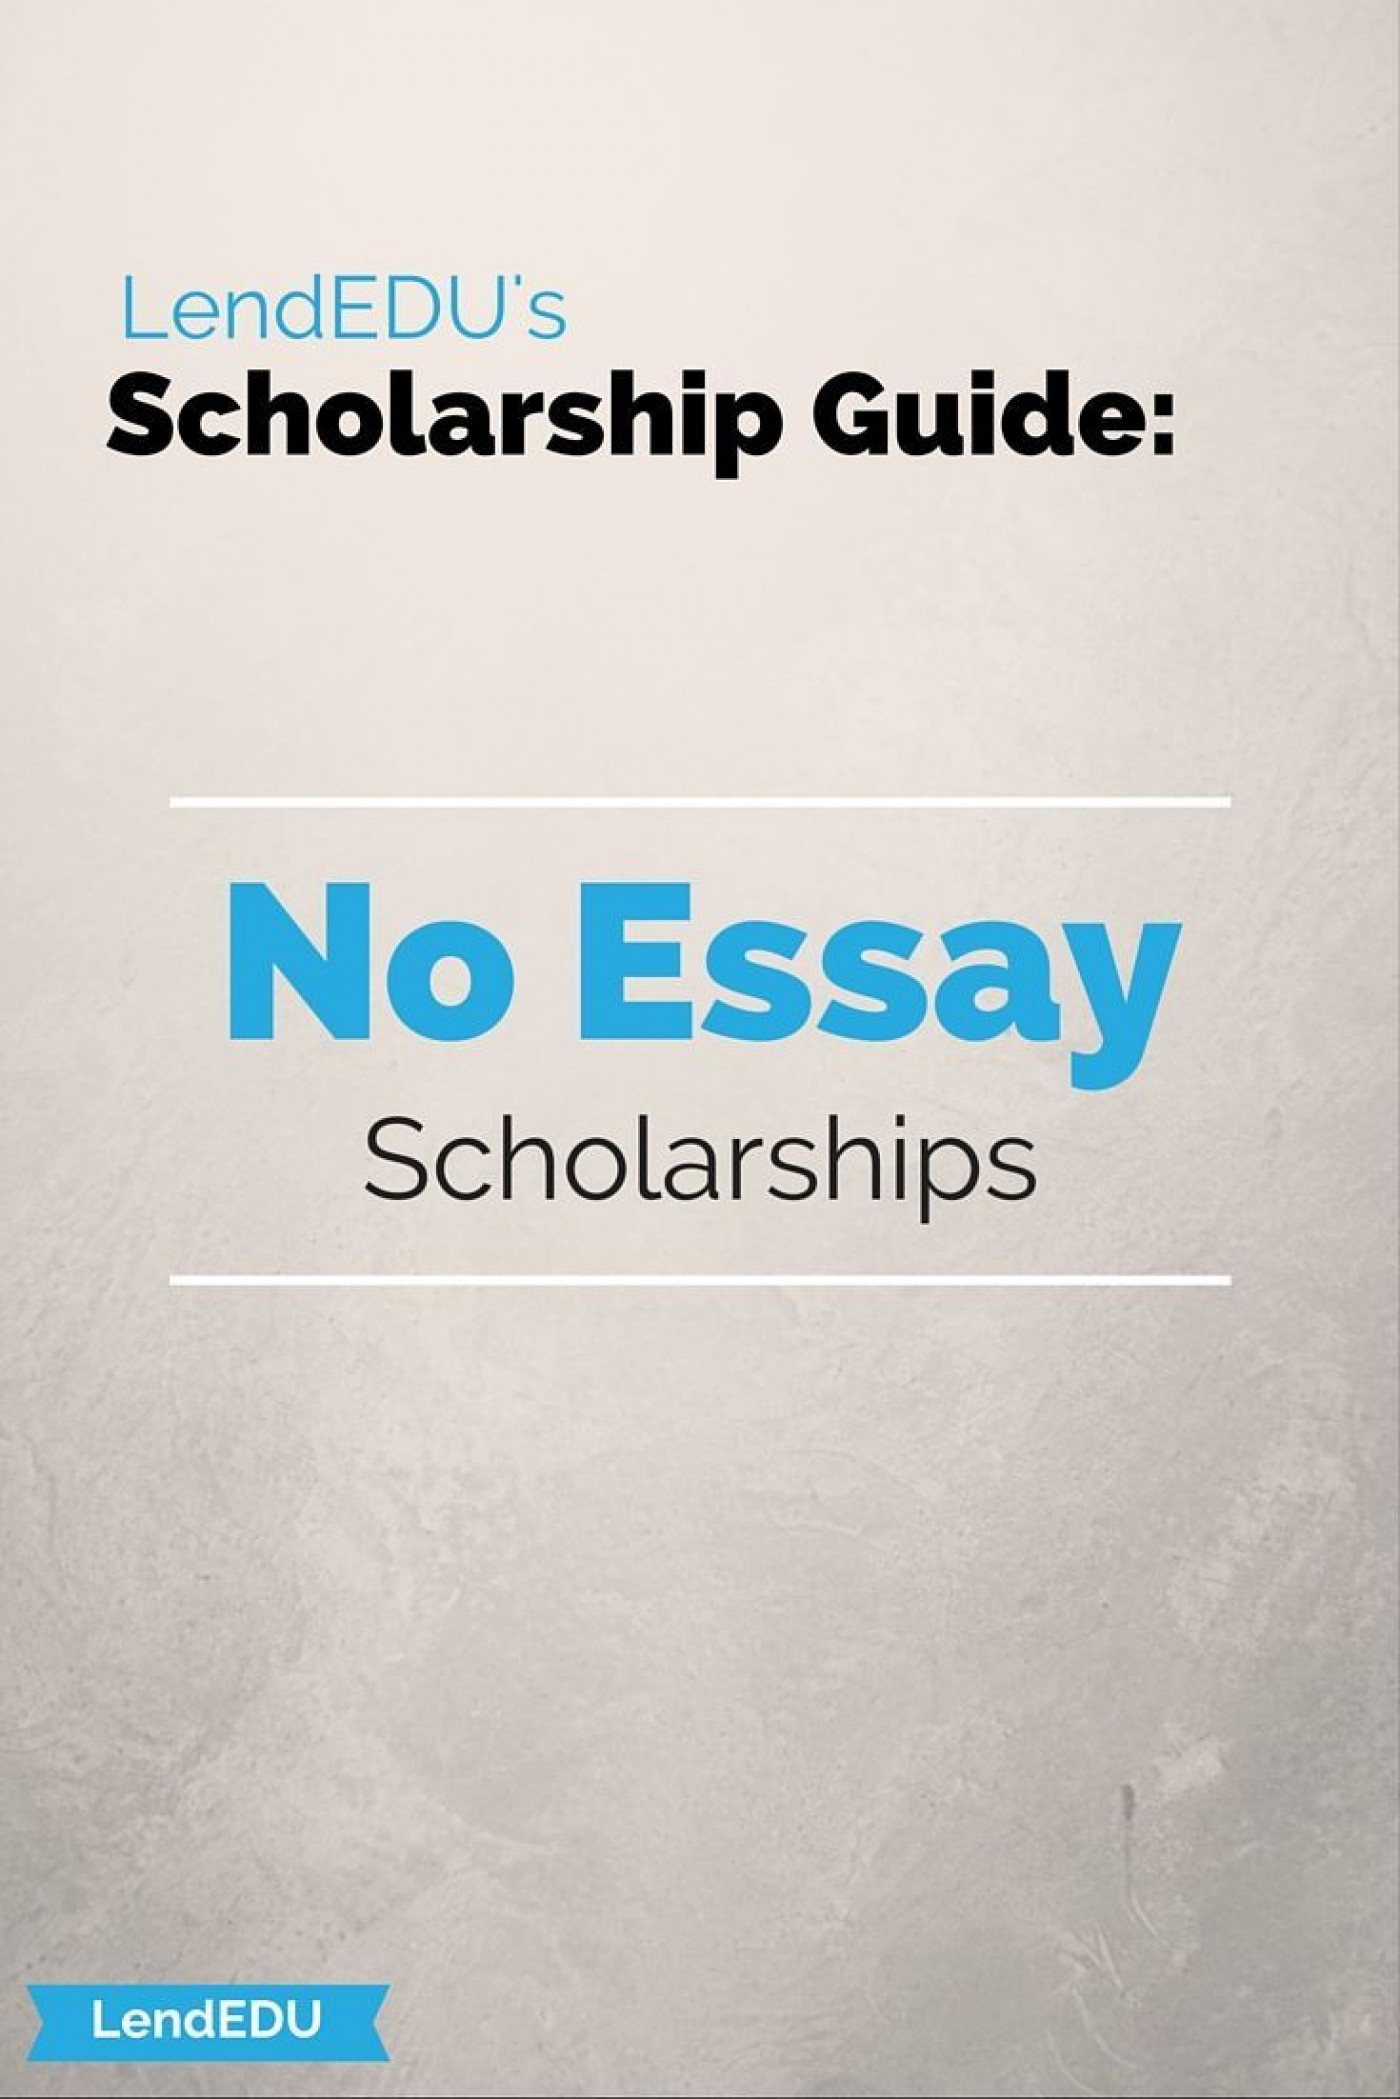 018 No Essay Scholarships Example Exceptional For Undergraduates College Students 2019 1400